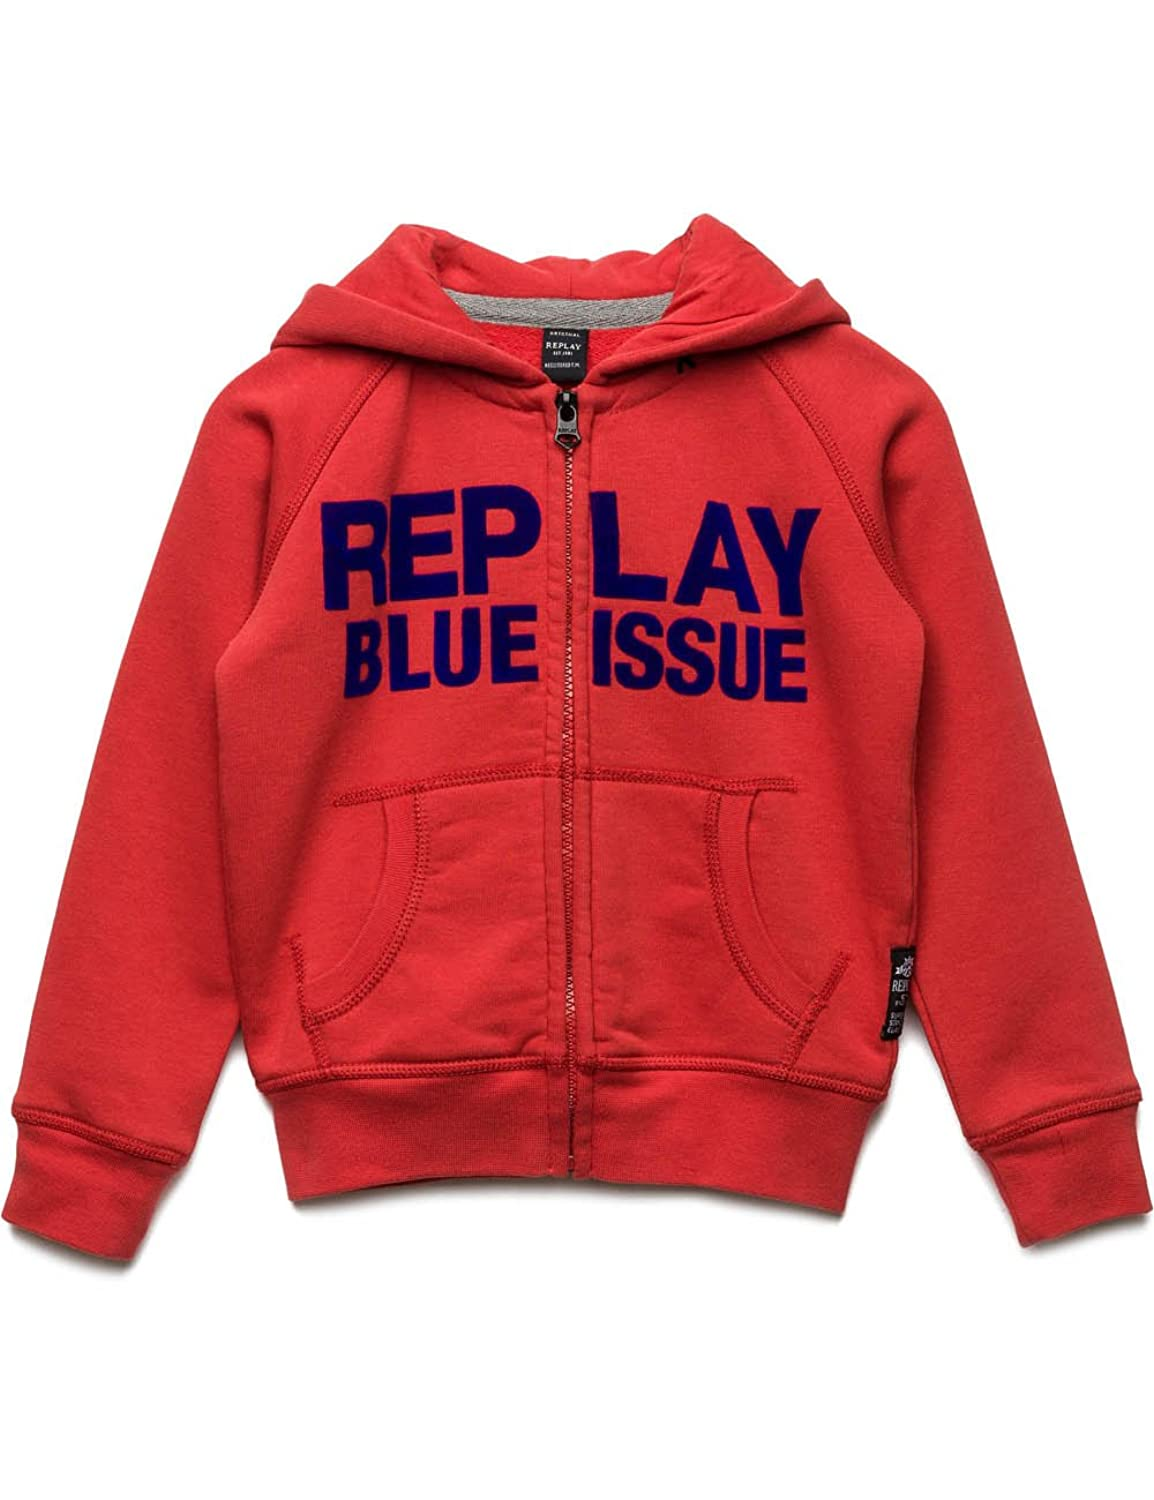 Replay Jungen Sweatshirt Sb2340.056.20225u